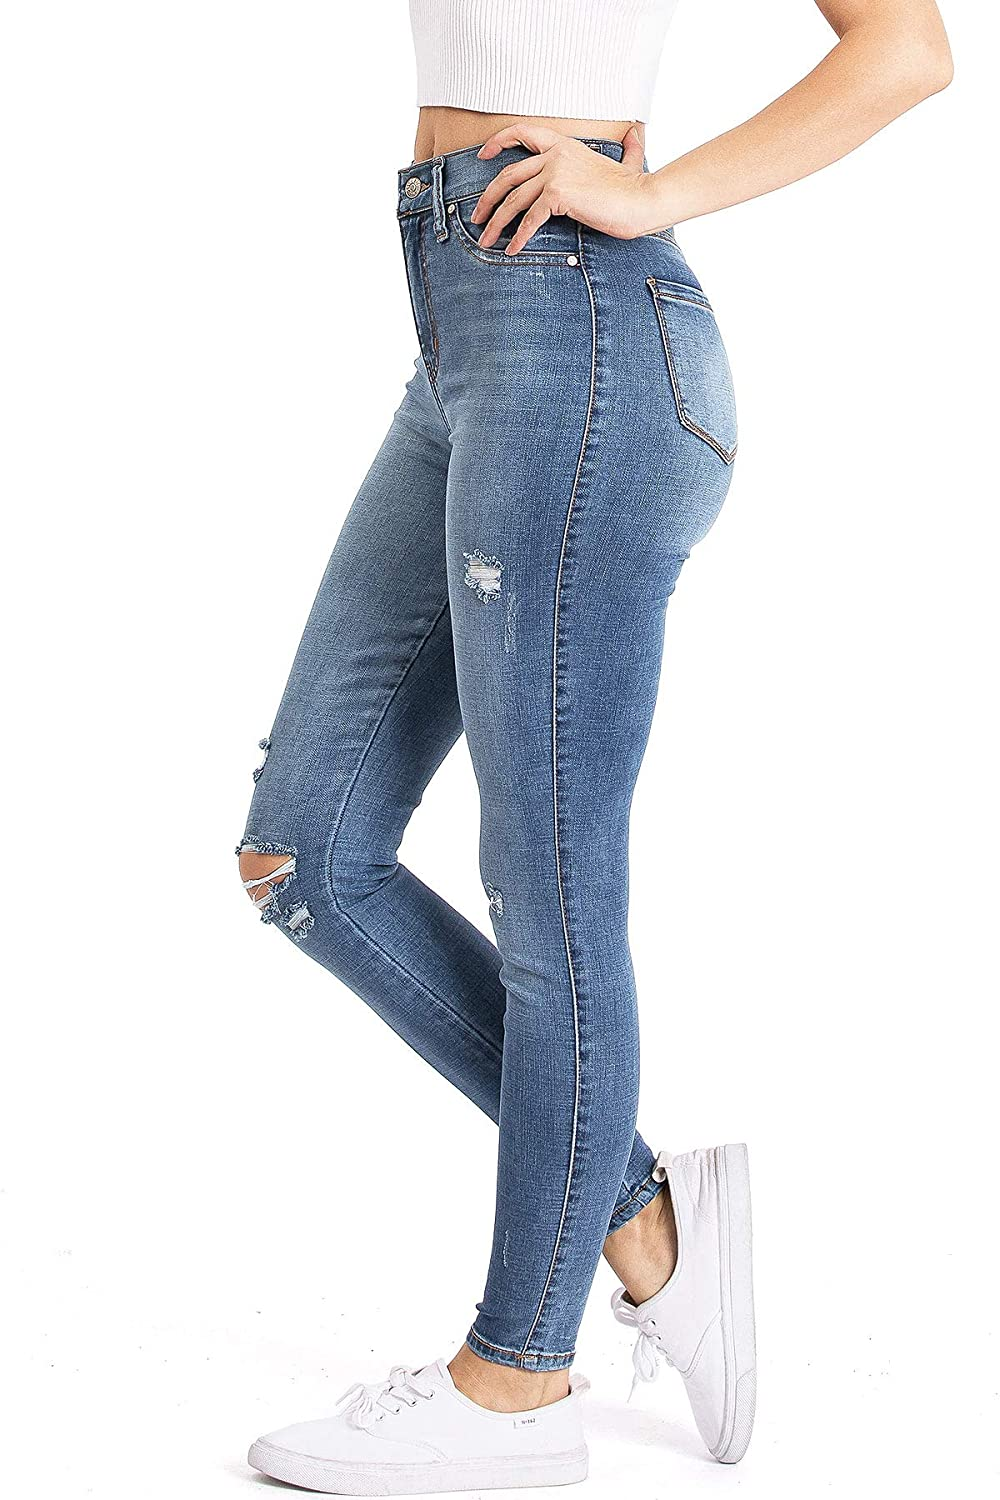 Celebrity Pink Jeans Womens Juniors High Rise Ankle Skinny Jeans